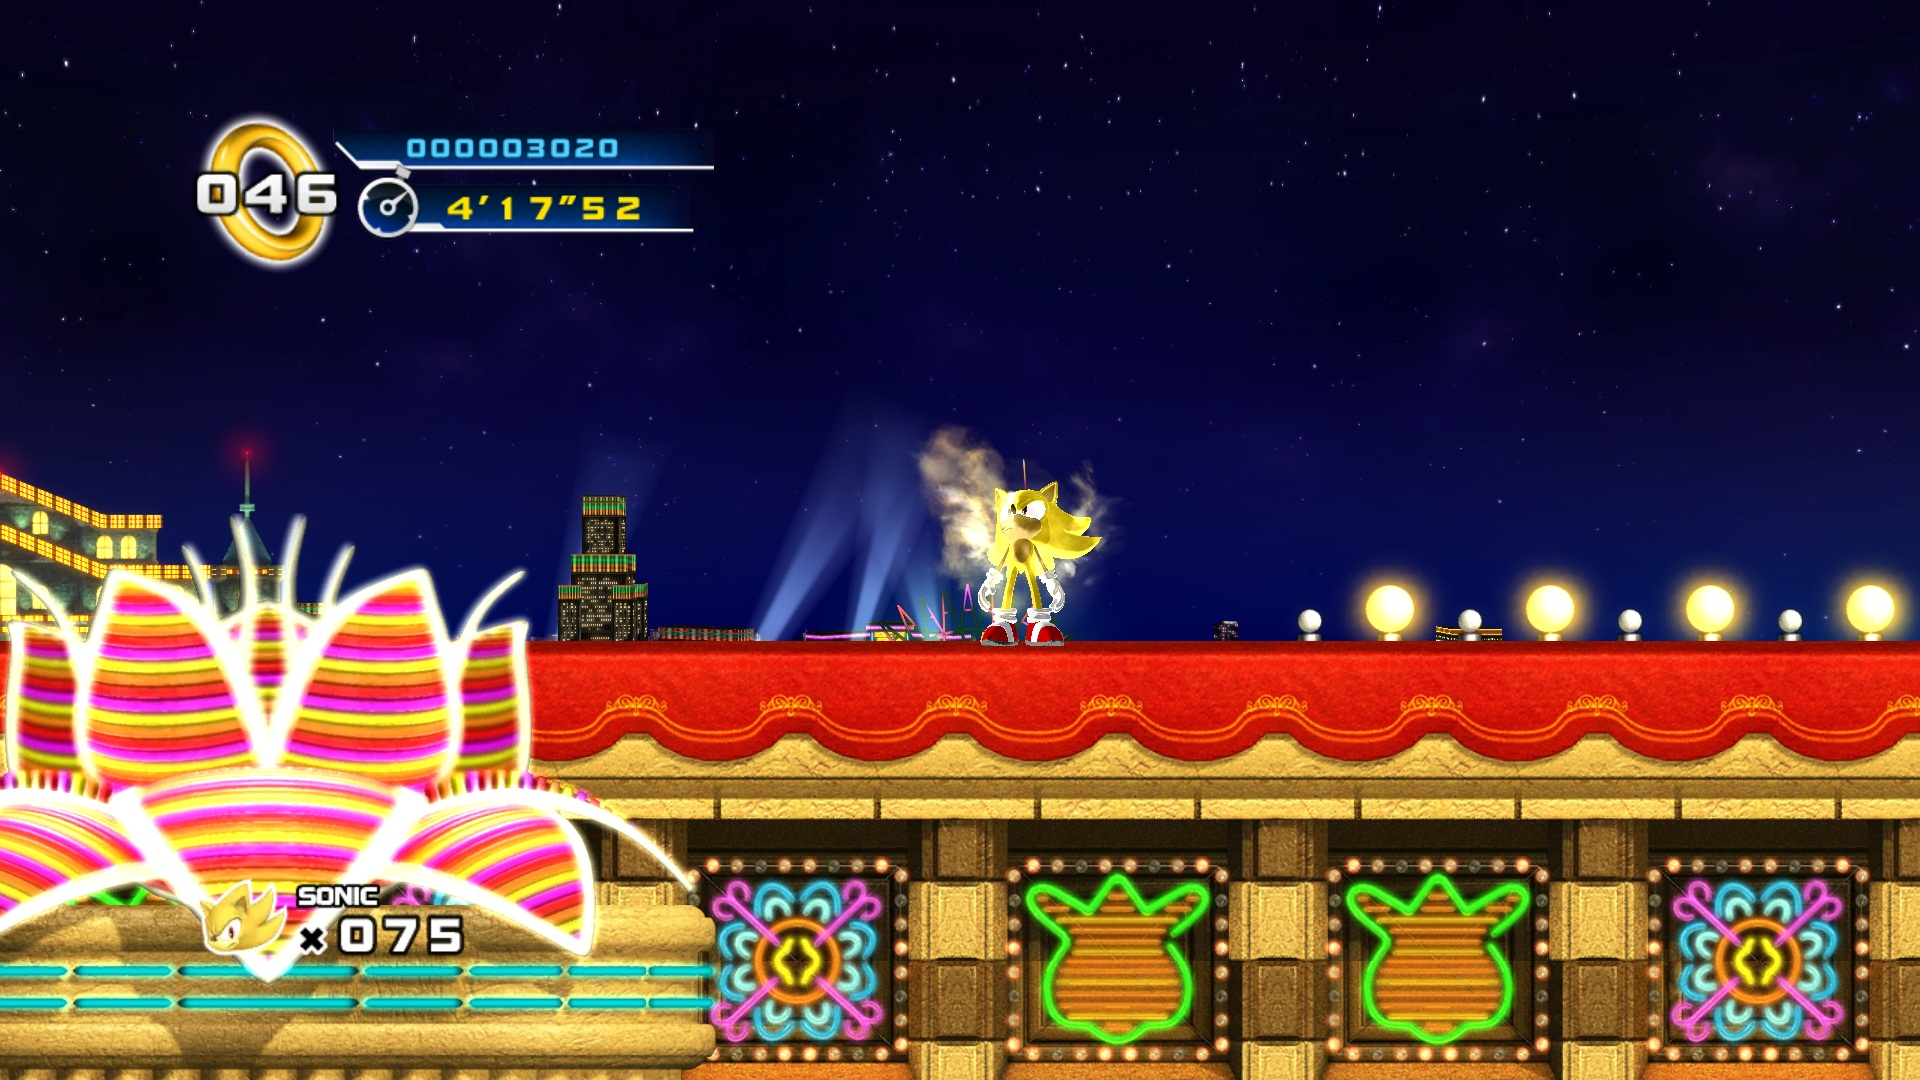 Unannounced XBLA games and screenshots leaked, including Crazy Taxi and Quake Arena.-super-sonic.jpg